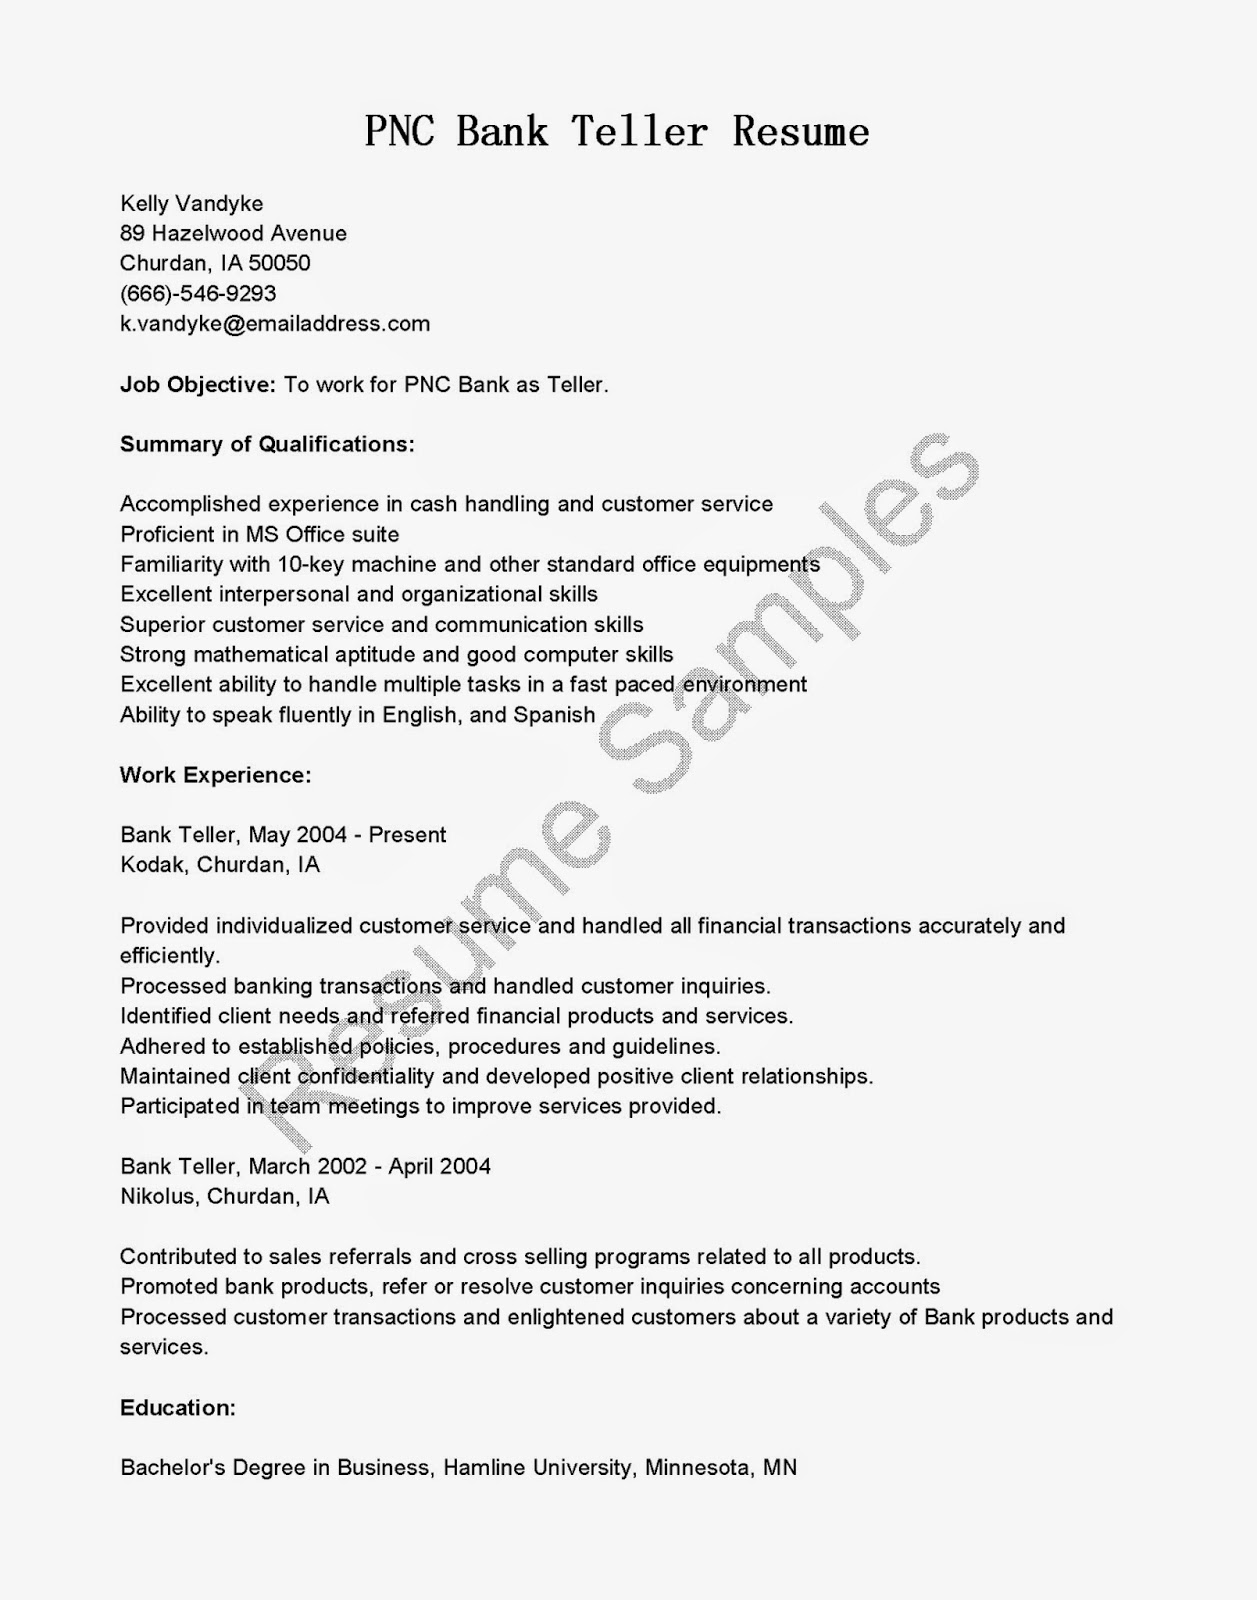 Resume samples pnc bank teller resume sample for Sample resume for a bank teller with no experience